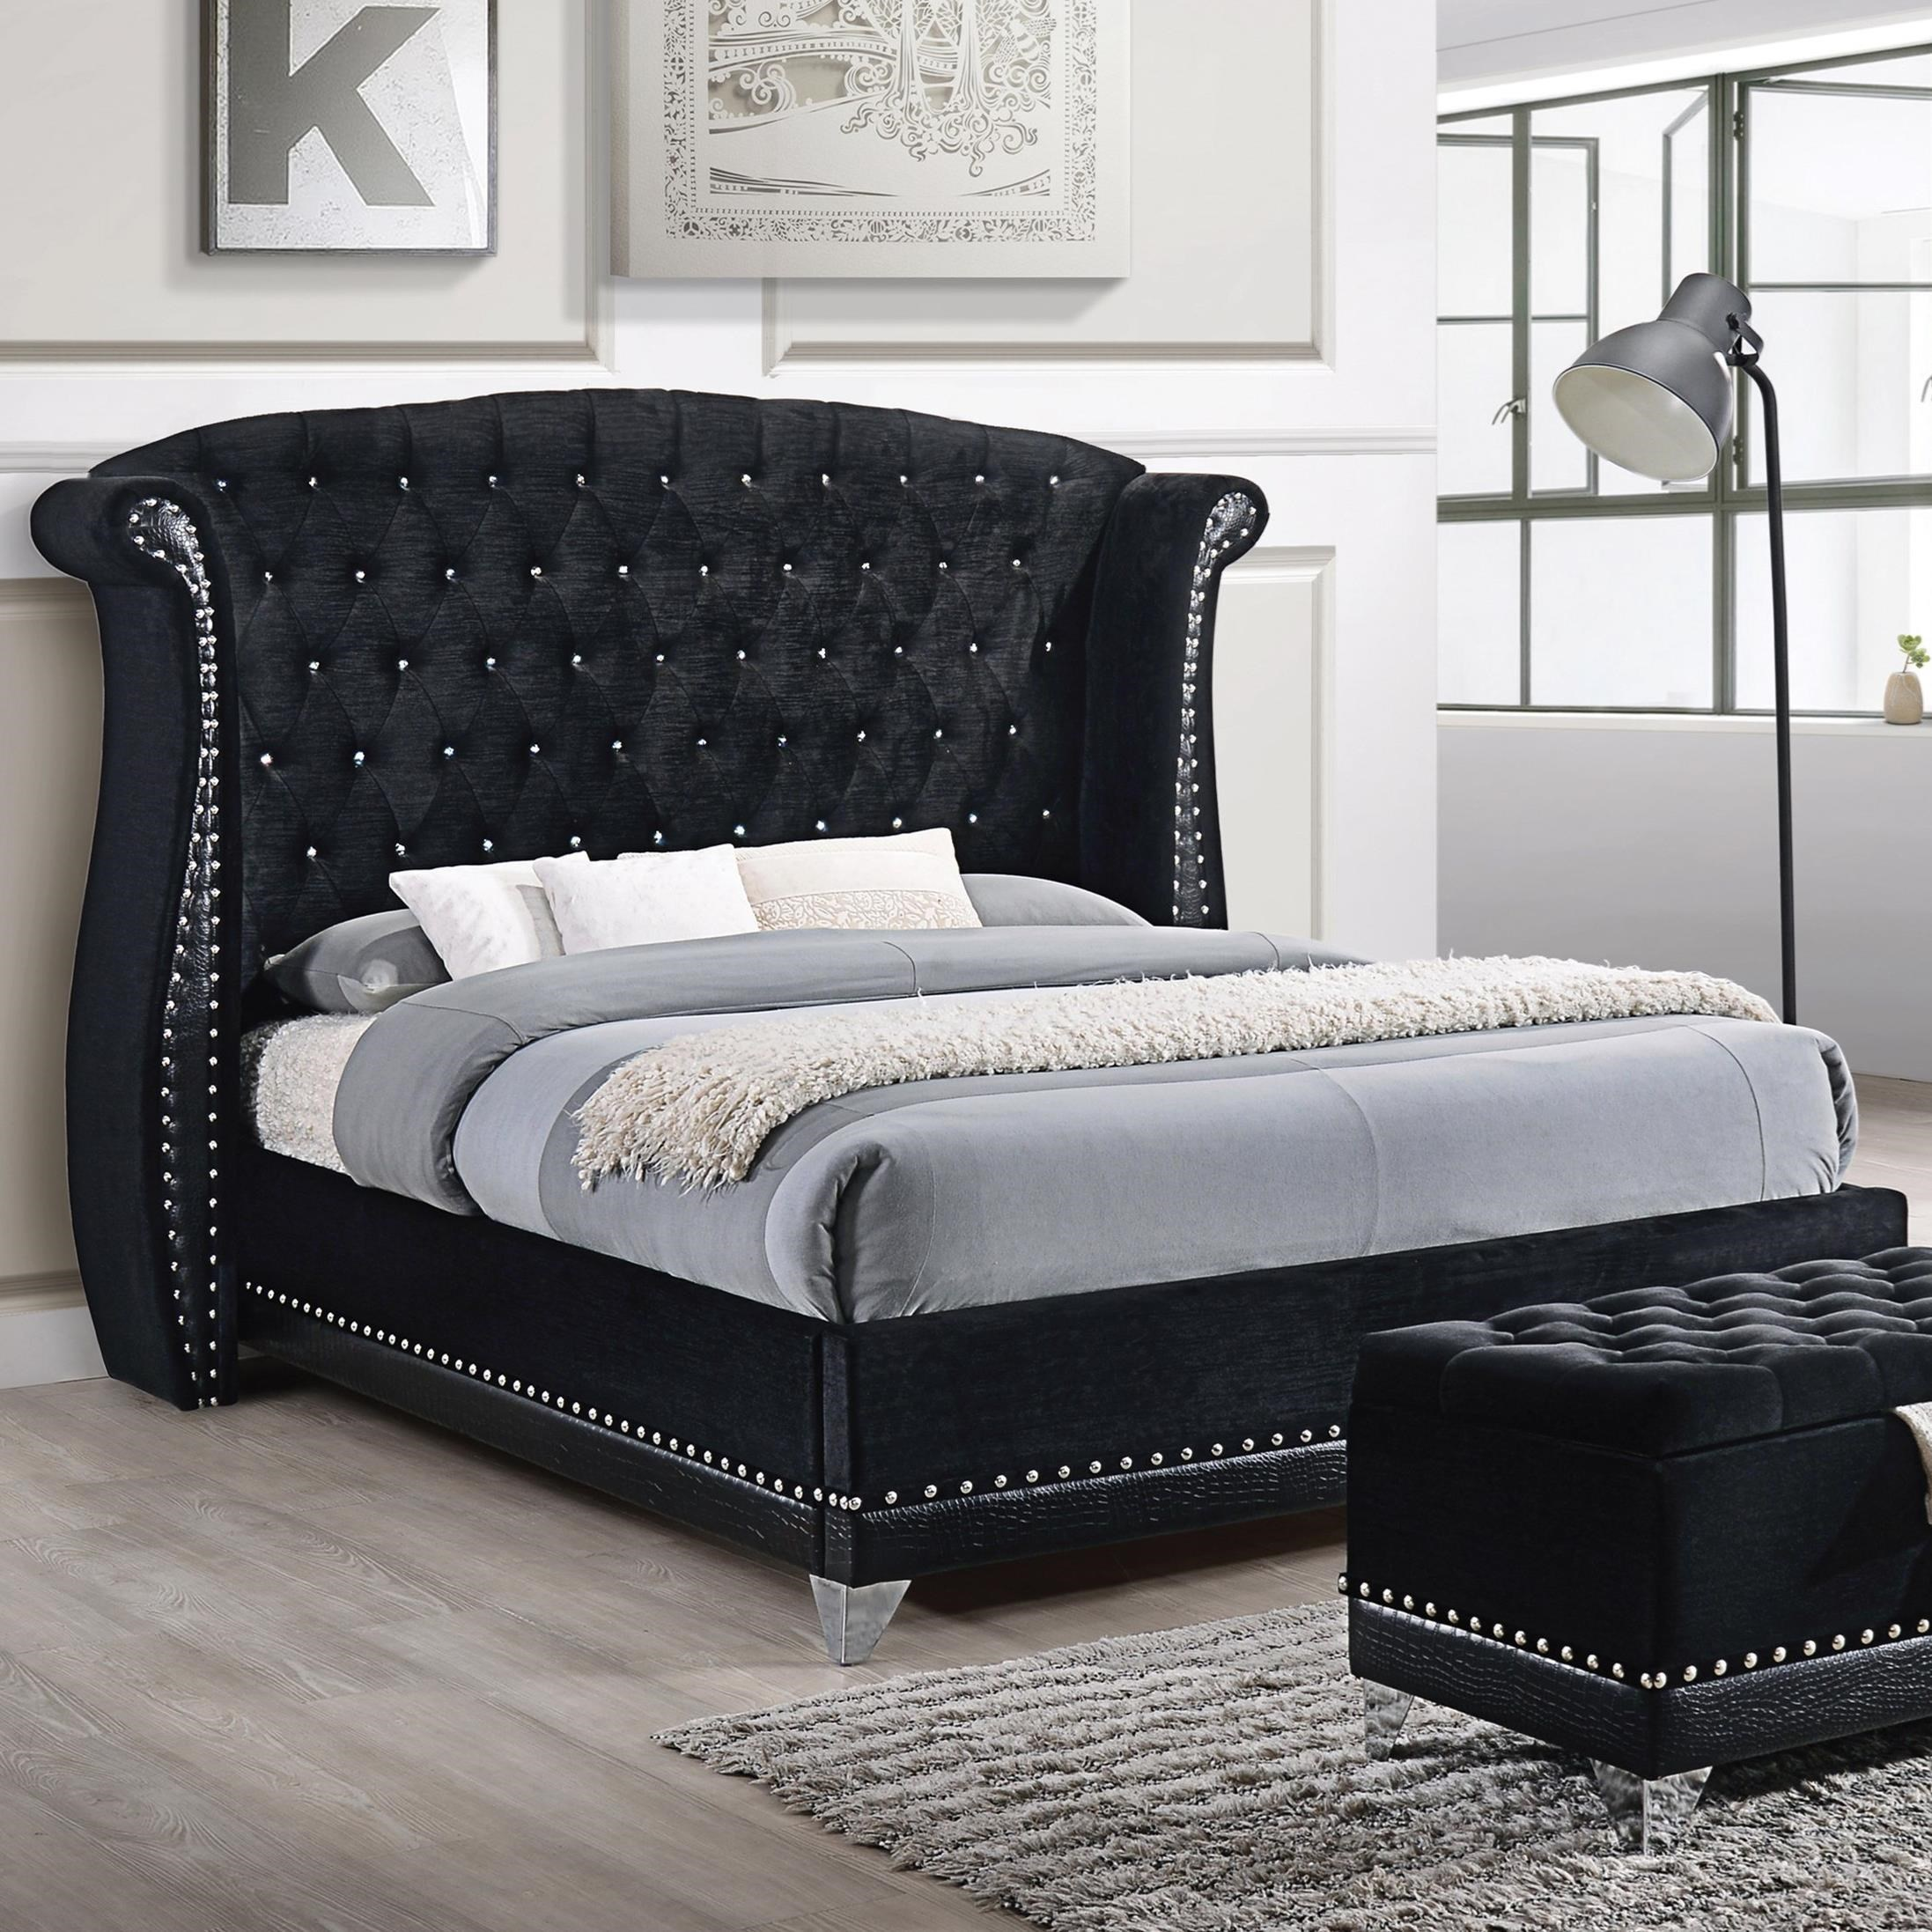 Barzini California King Bed by Coaster at Rife's Home Furniture